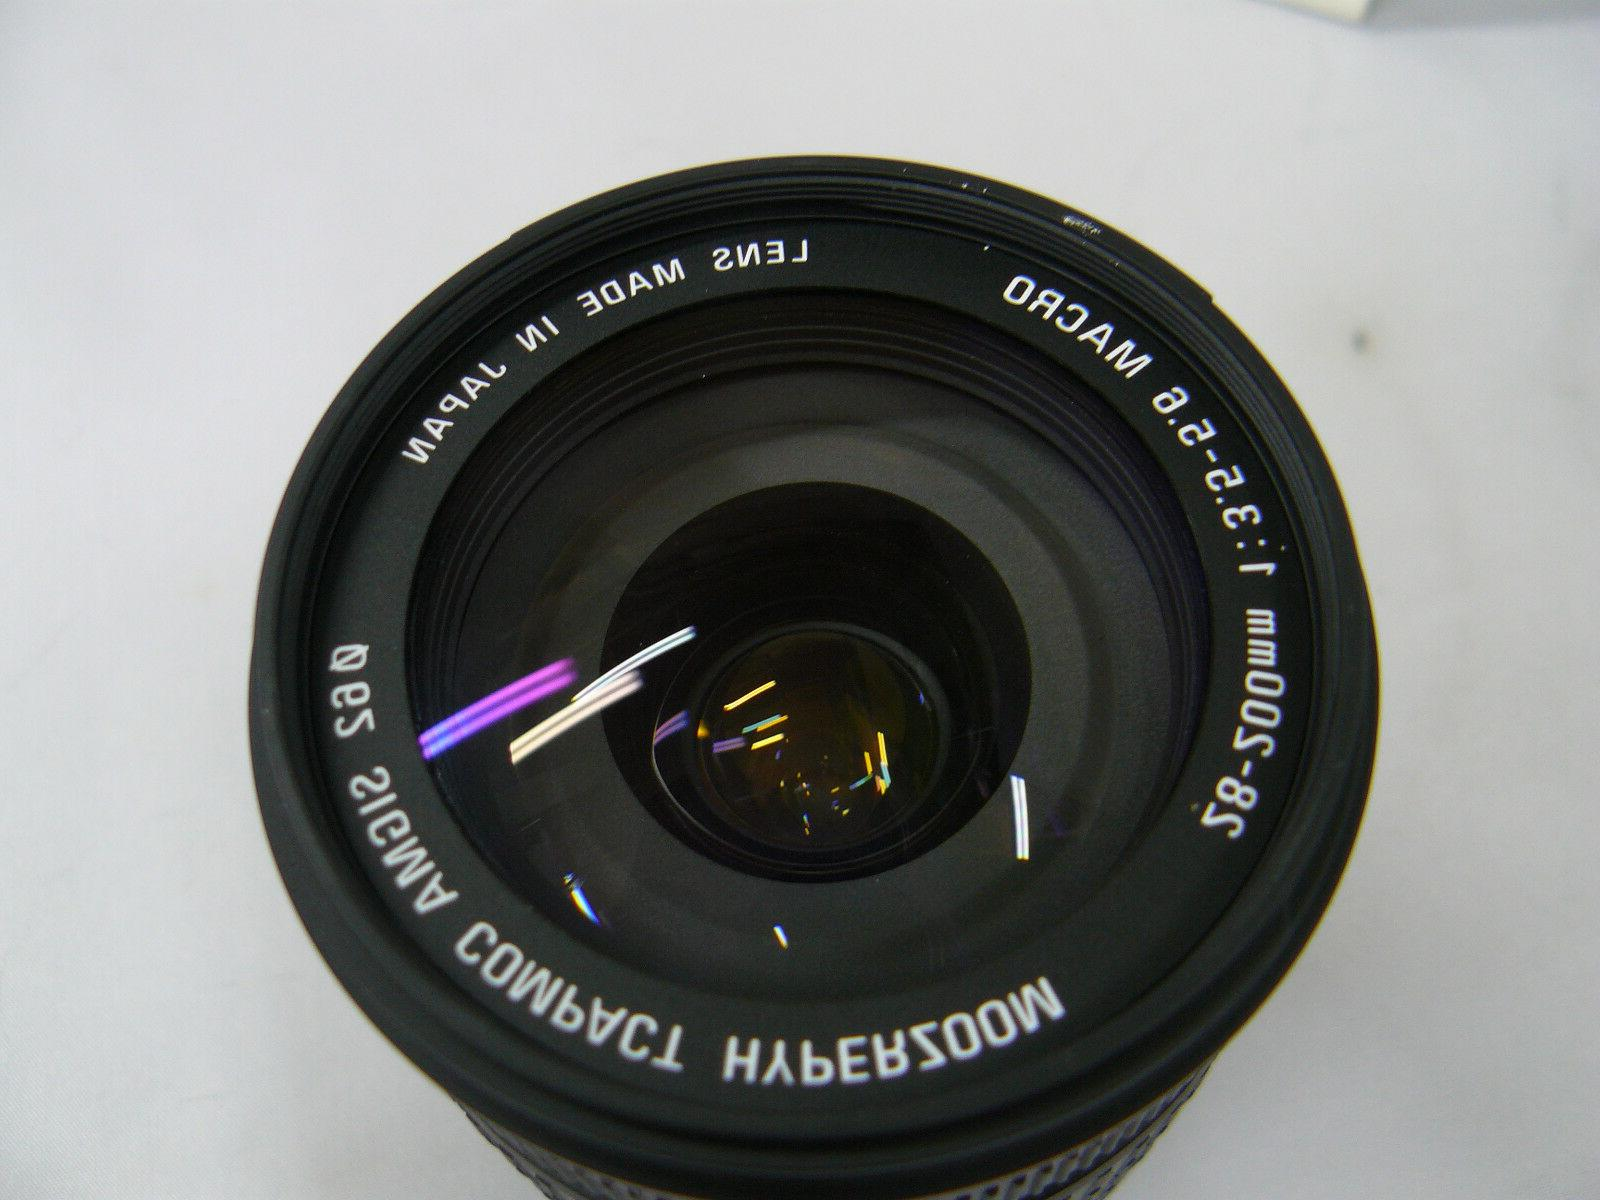 Sigma 28-200mm f3.5-5.6 Hyperzoom Lens for